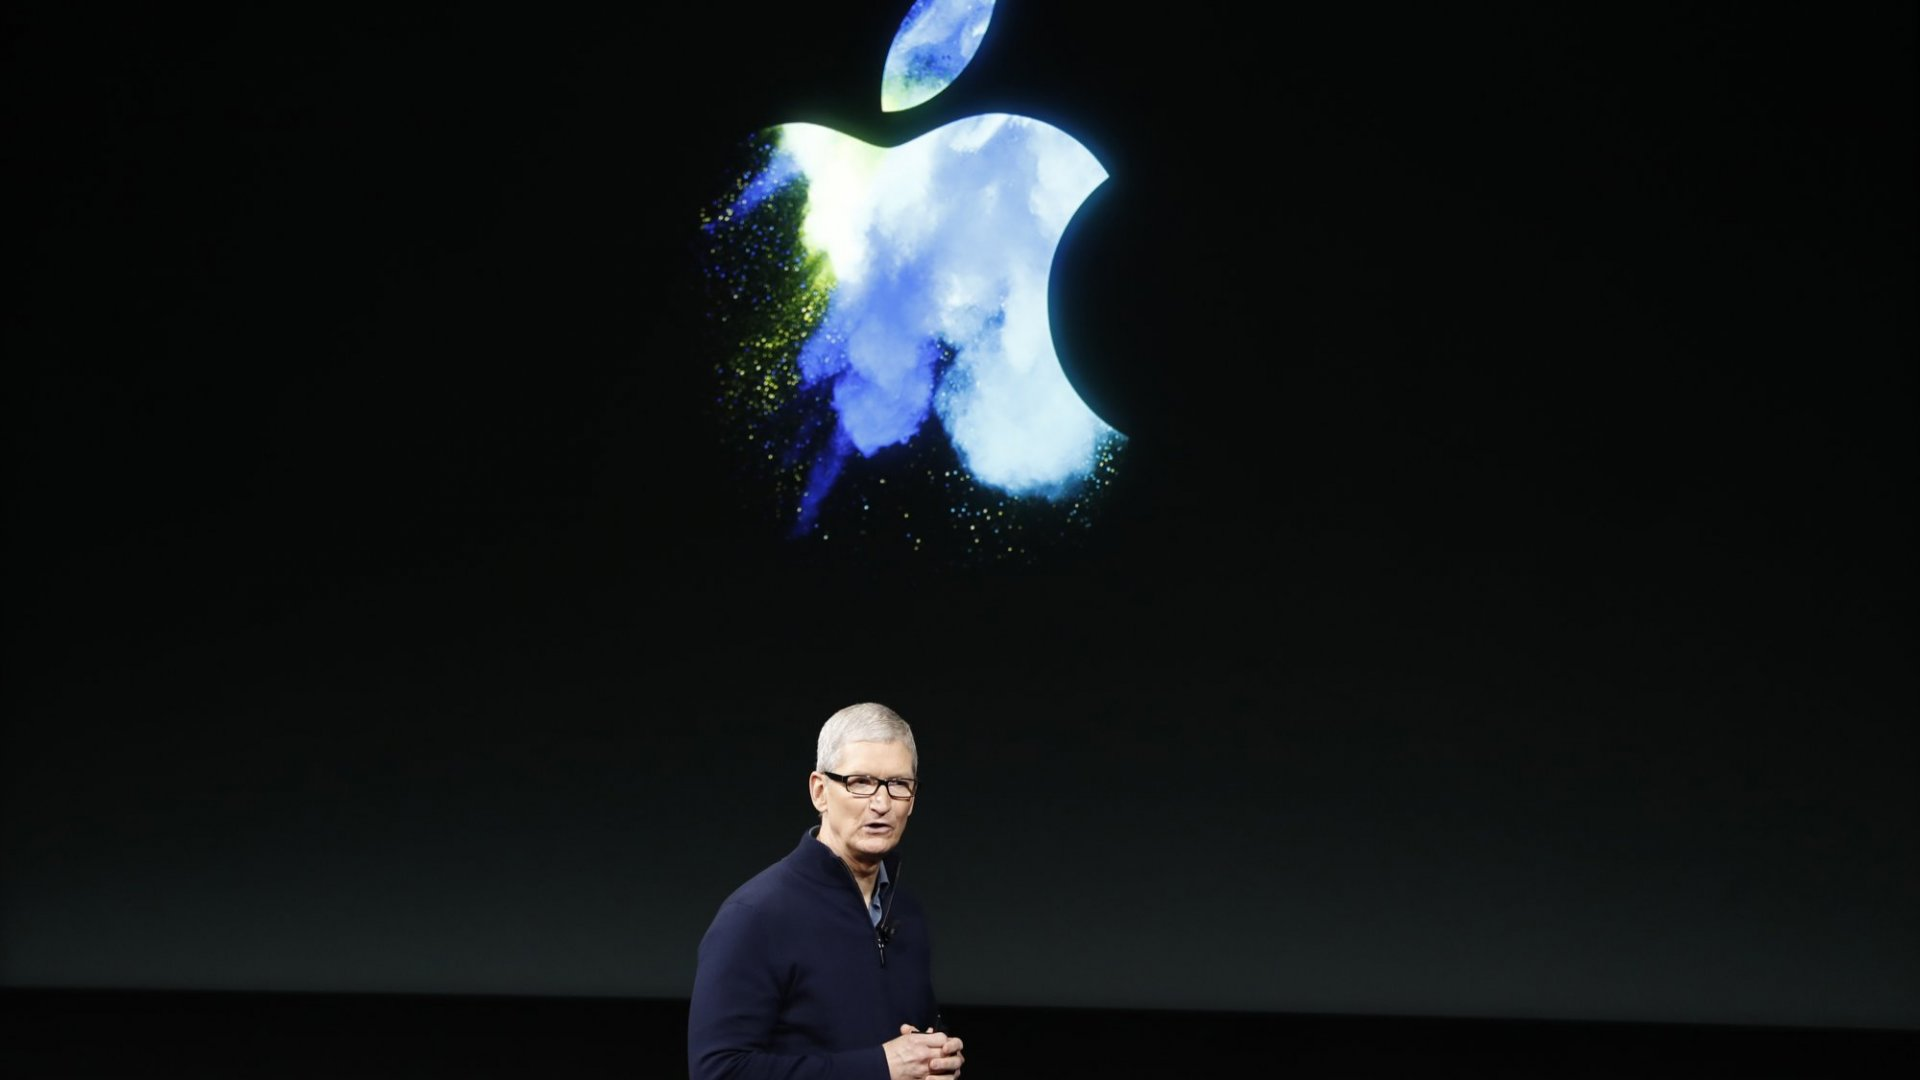 What Tim Cook Said in Apple's Covid-19 Meeting